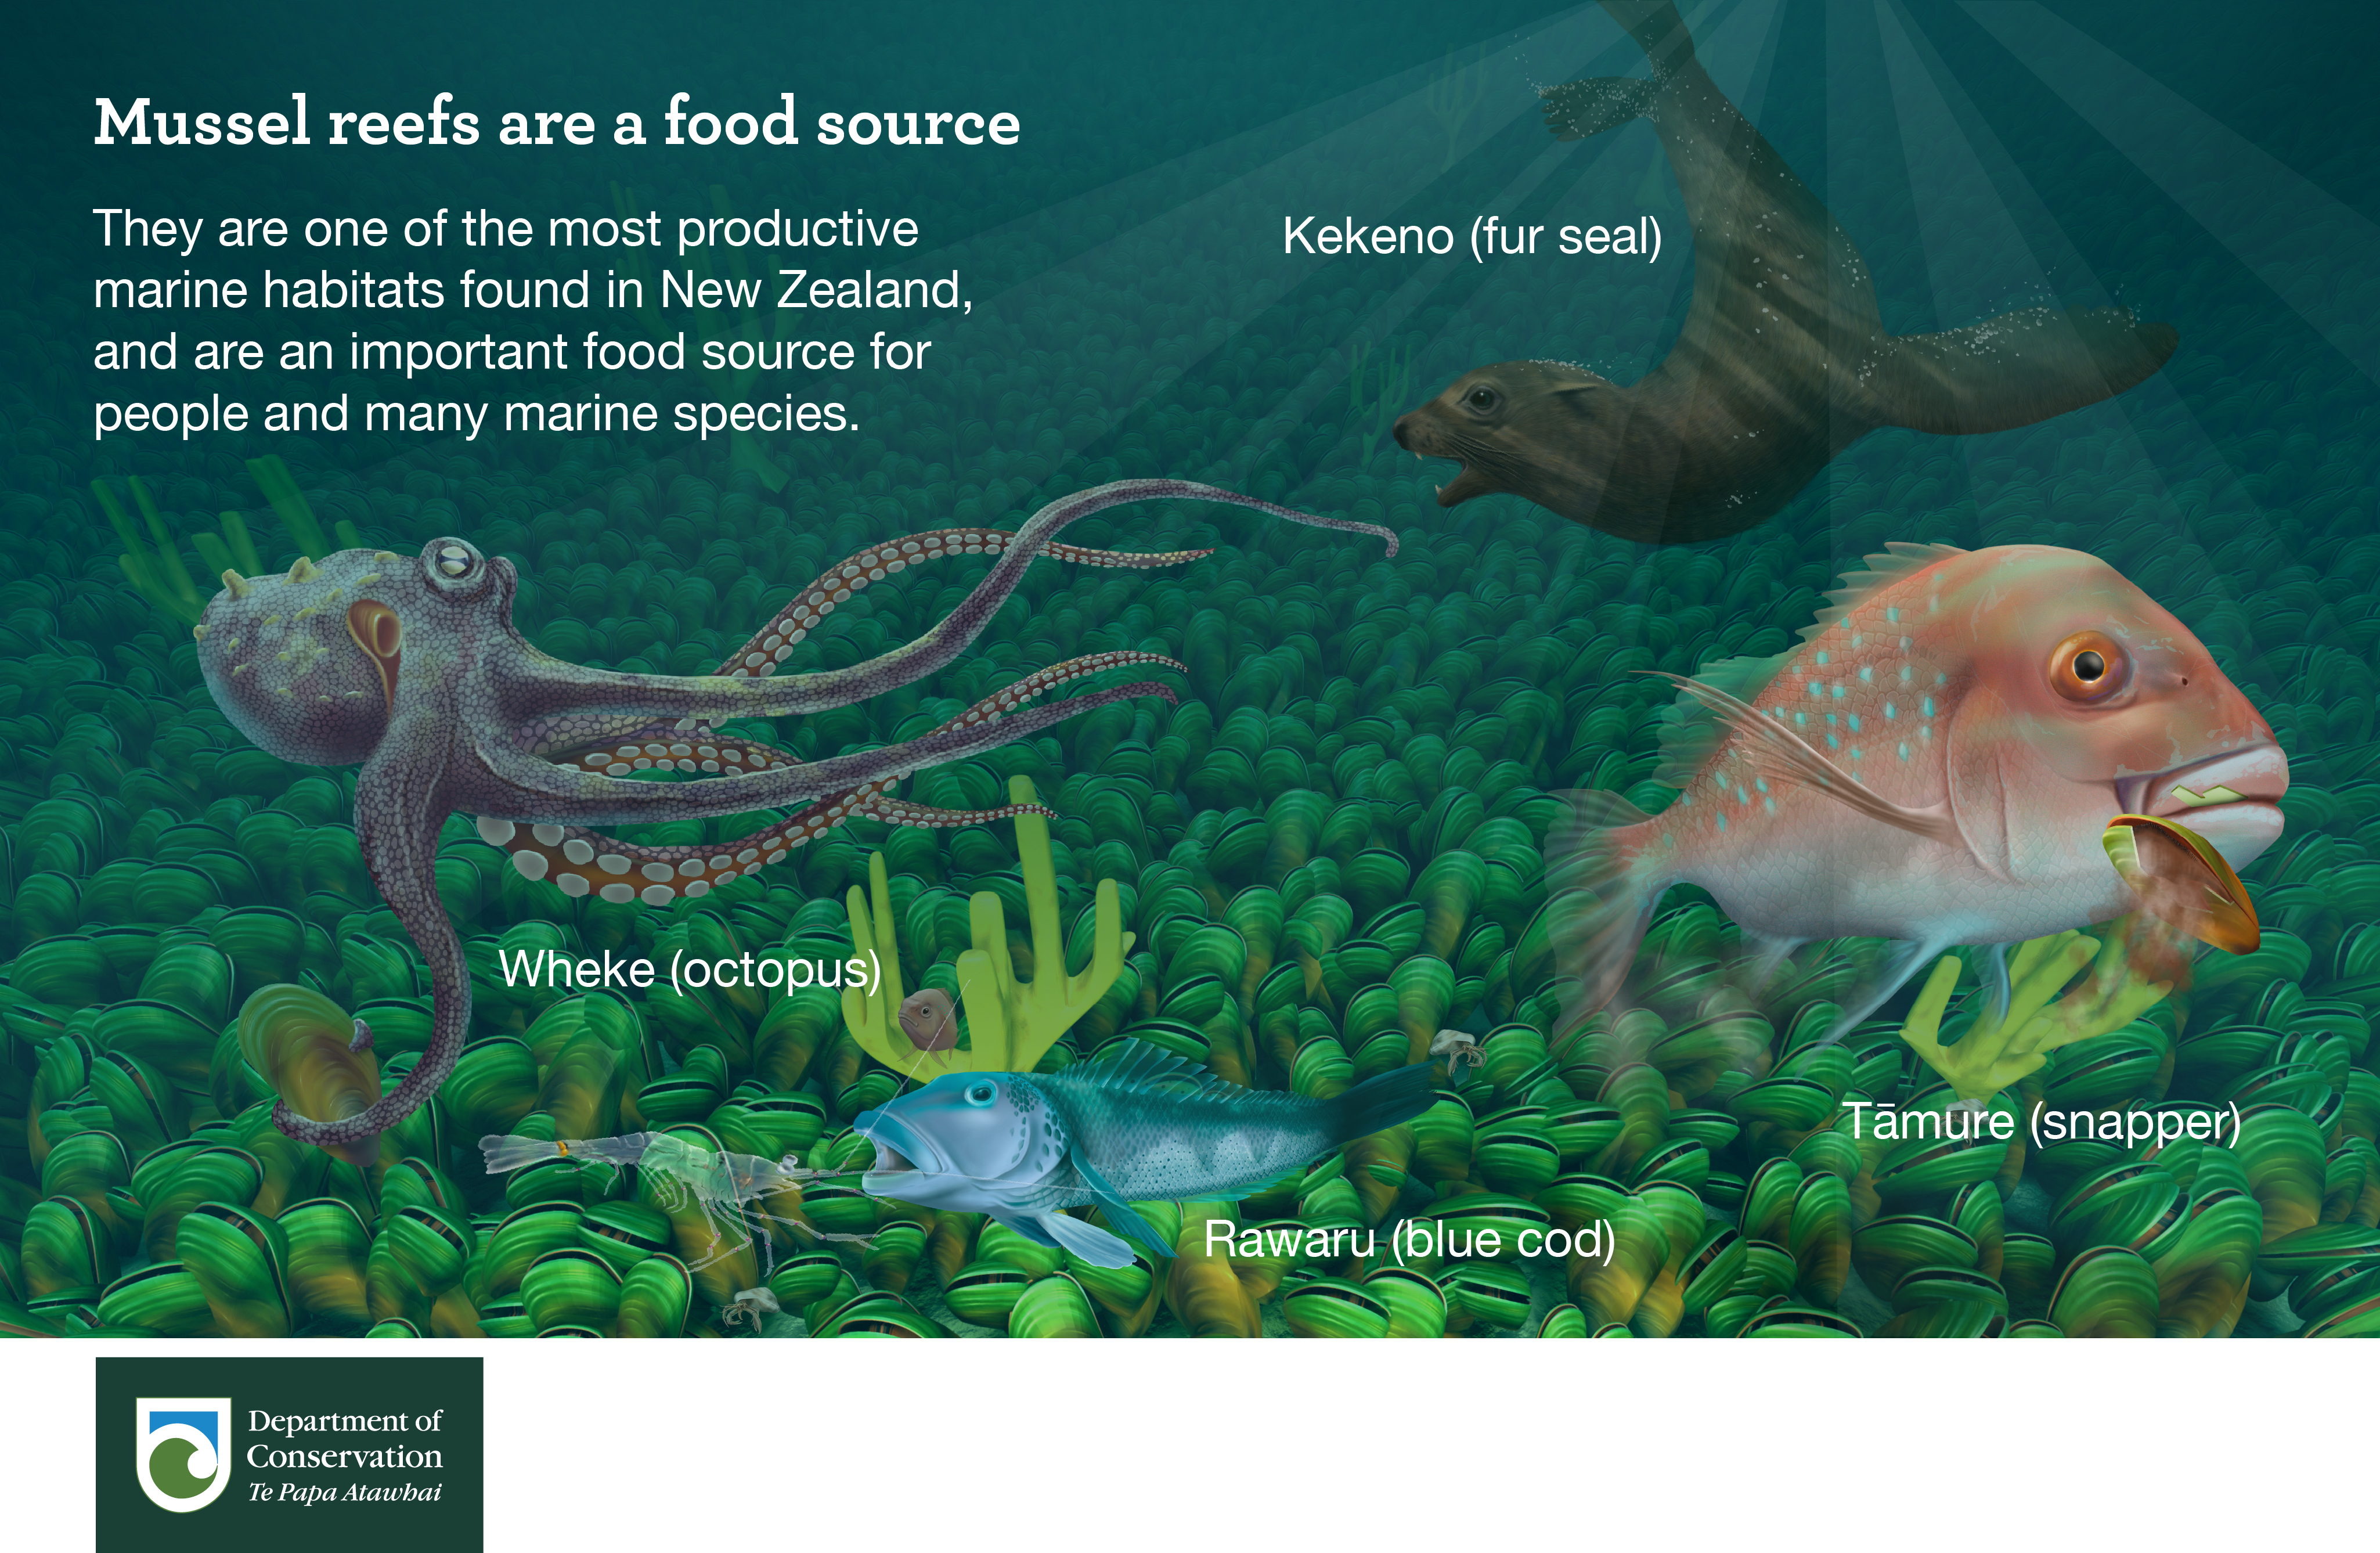 Mussel reefs are a food source